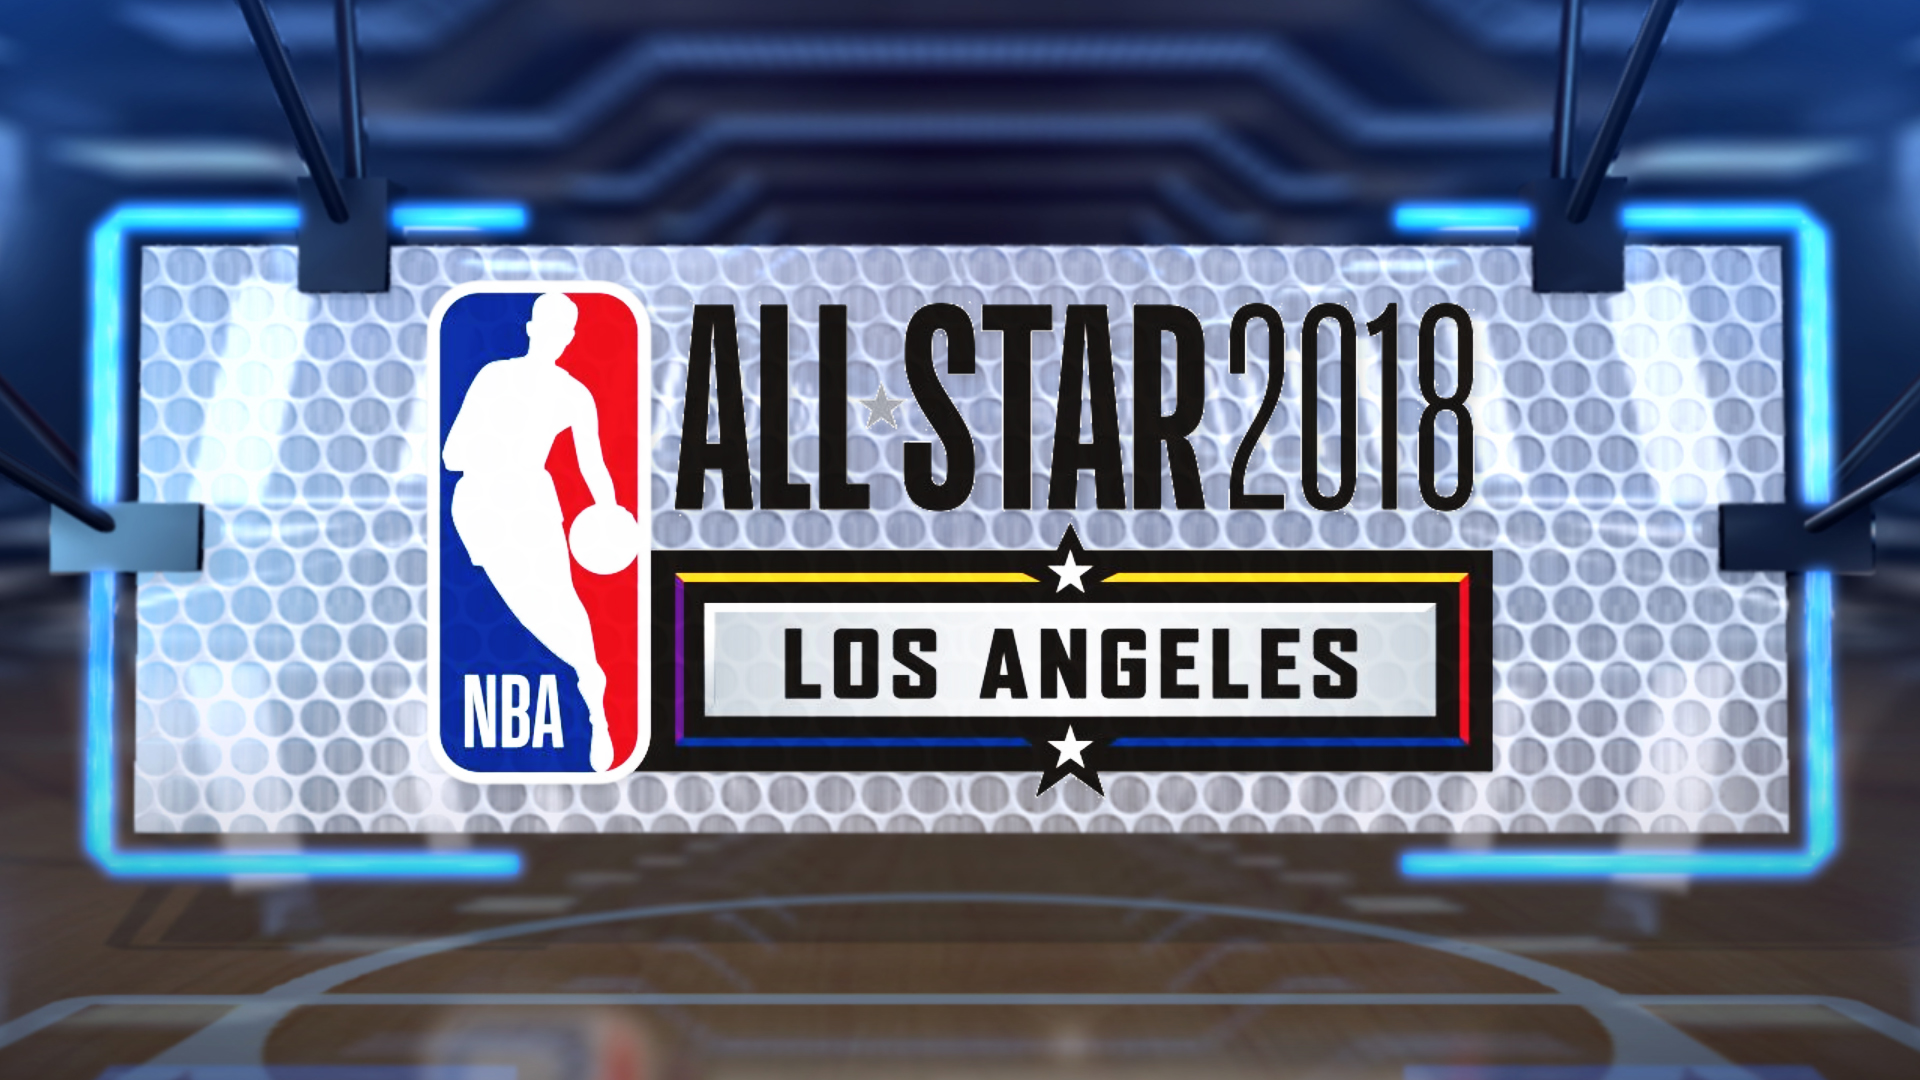 NBA ALL STAR 2018